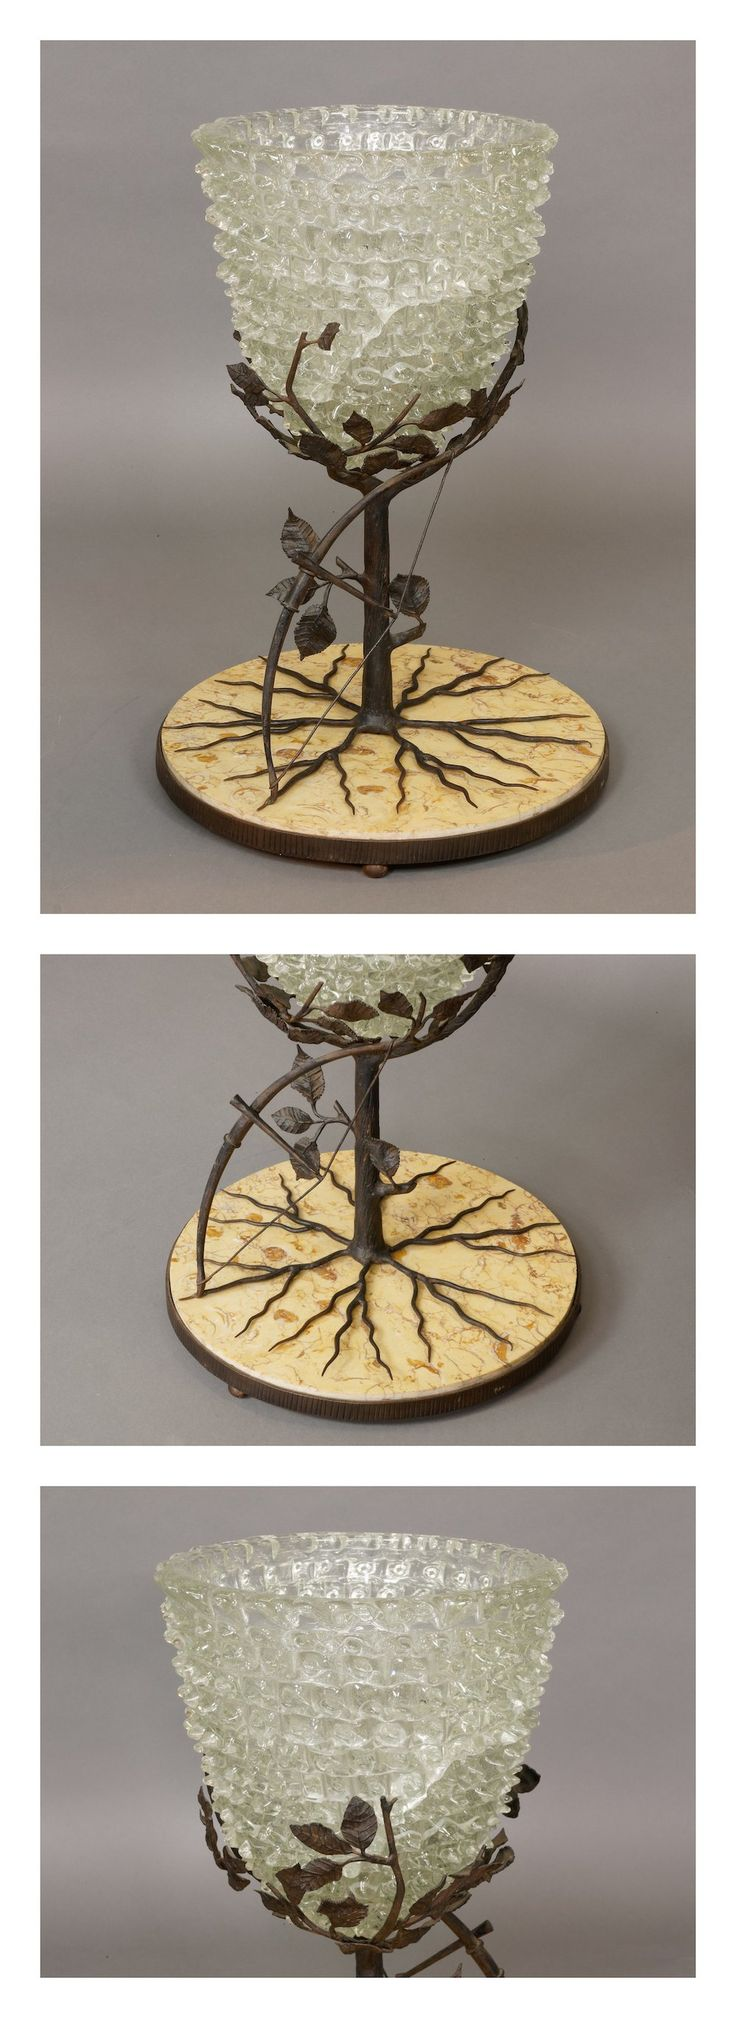 #French marble & metal centrepiece with Italian glass coup, c.1920.  #1920s #objectdart